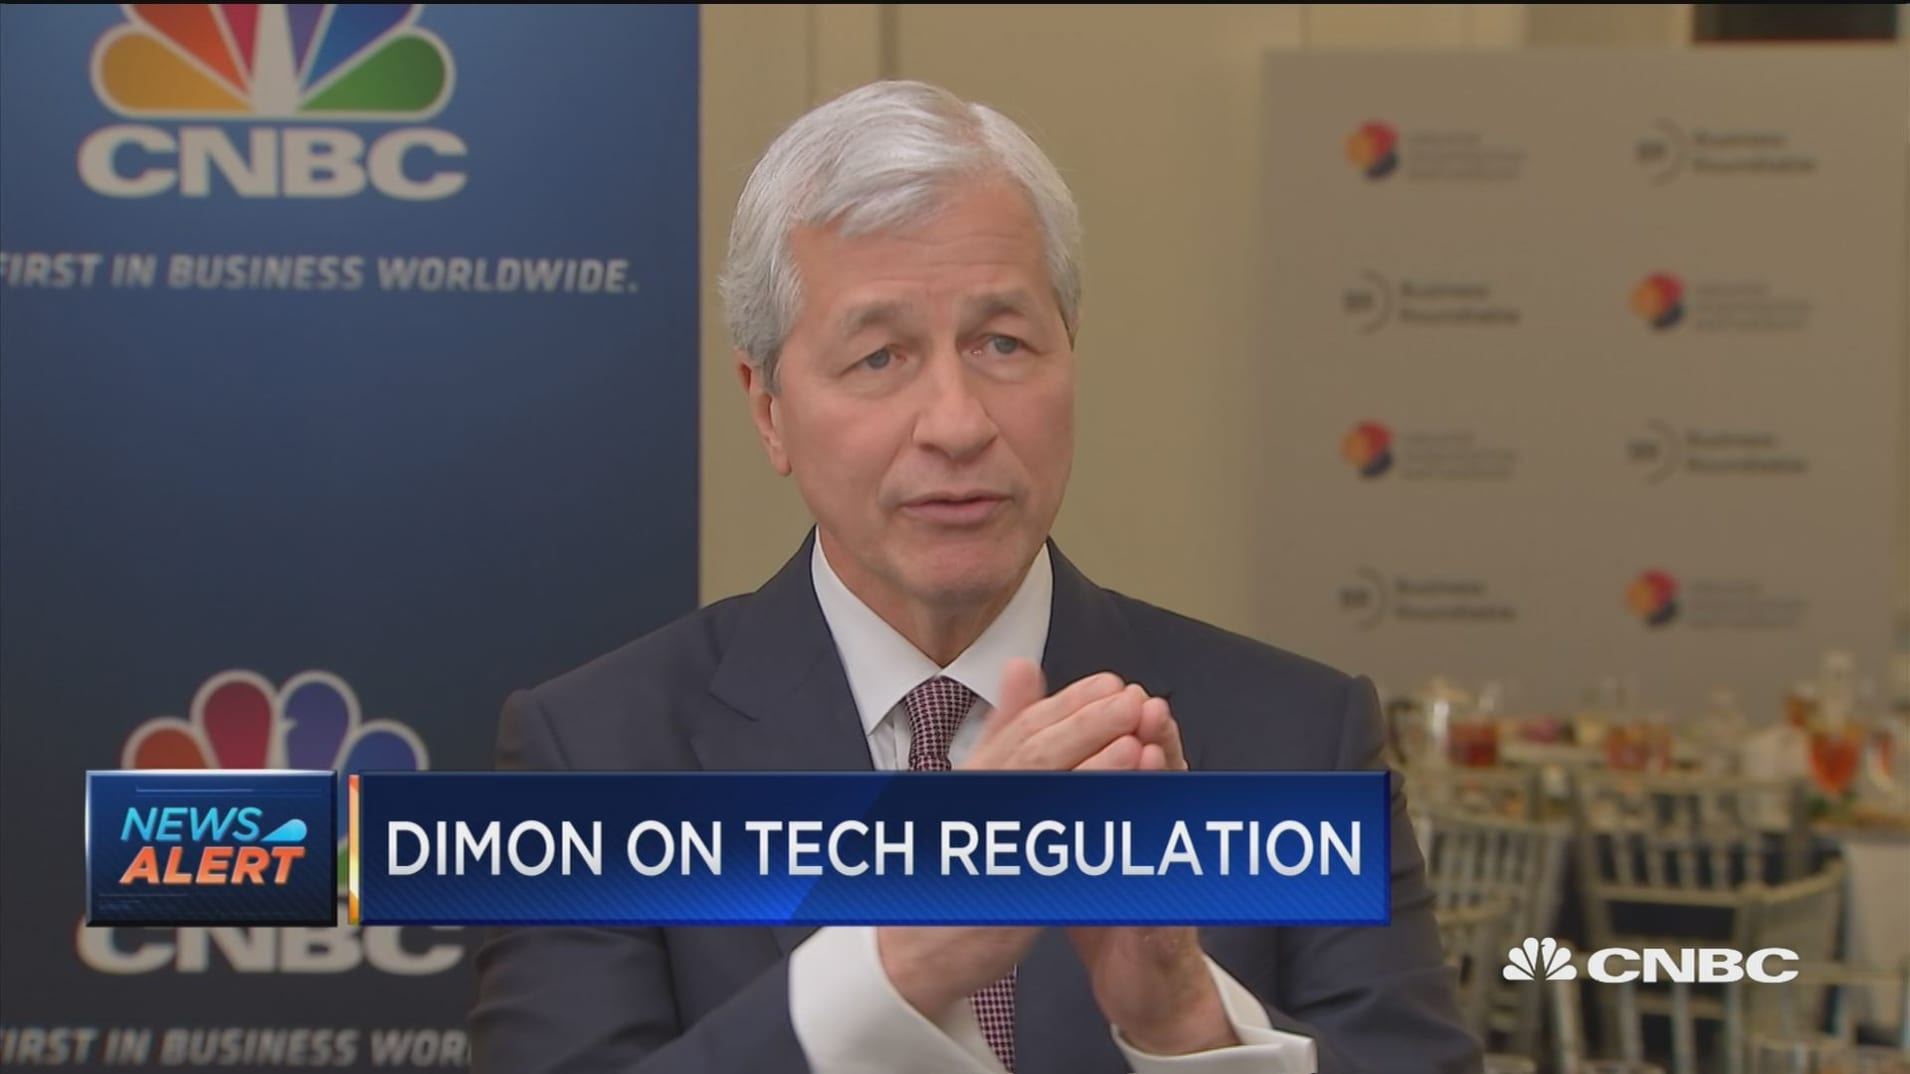 Jamie Dimon: Tech giants should get prepared for 'full monty' of regulatory onslaught